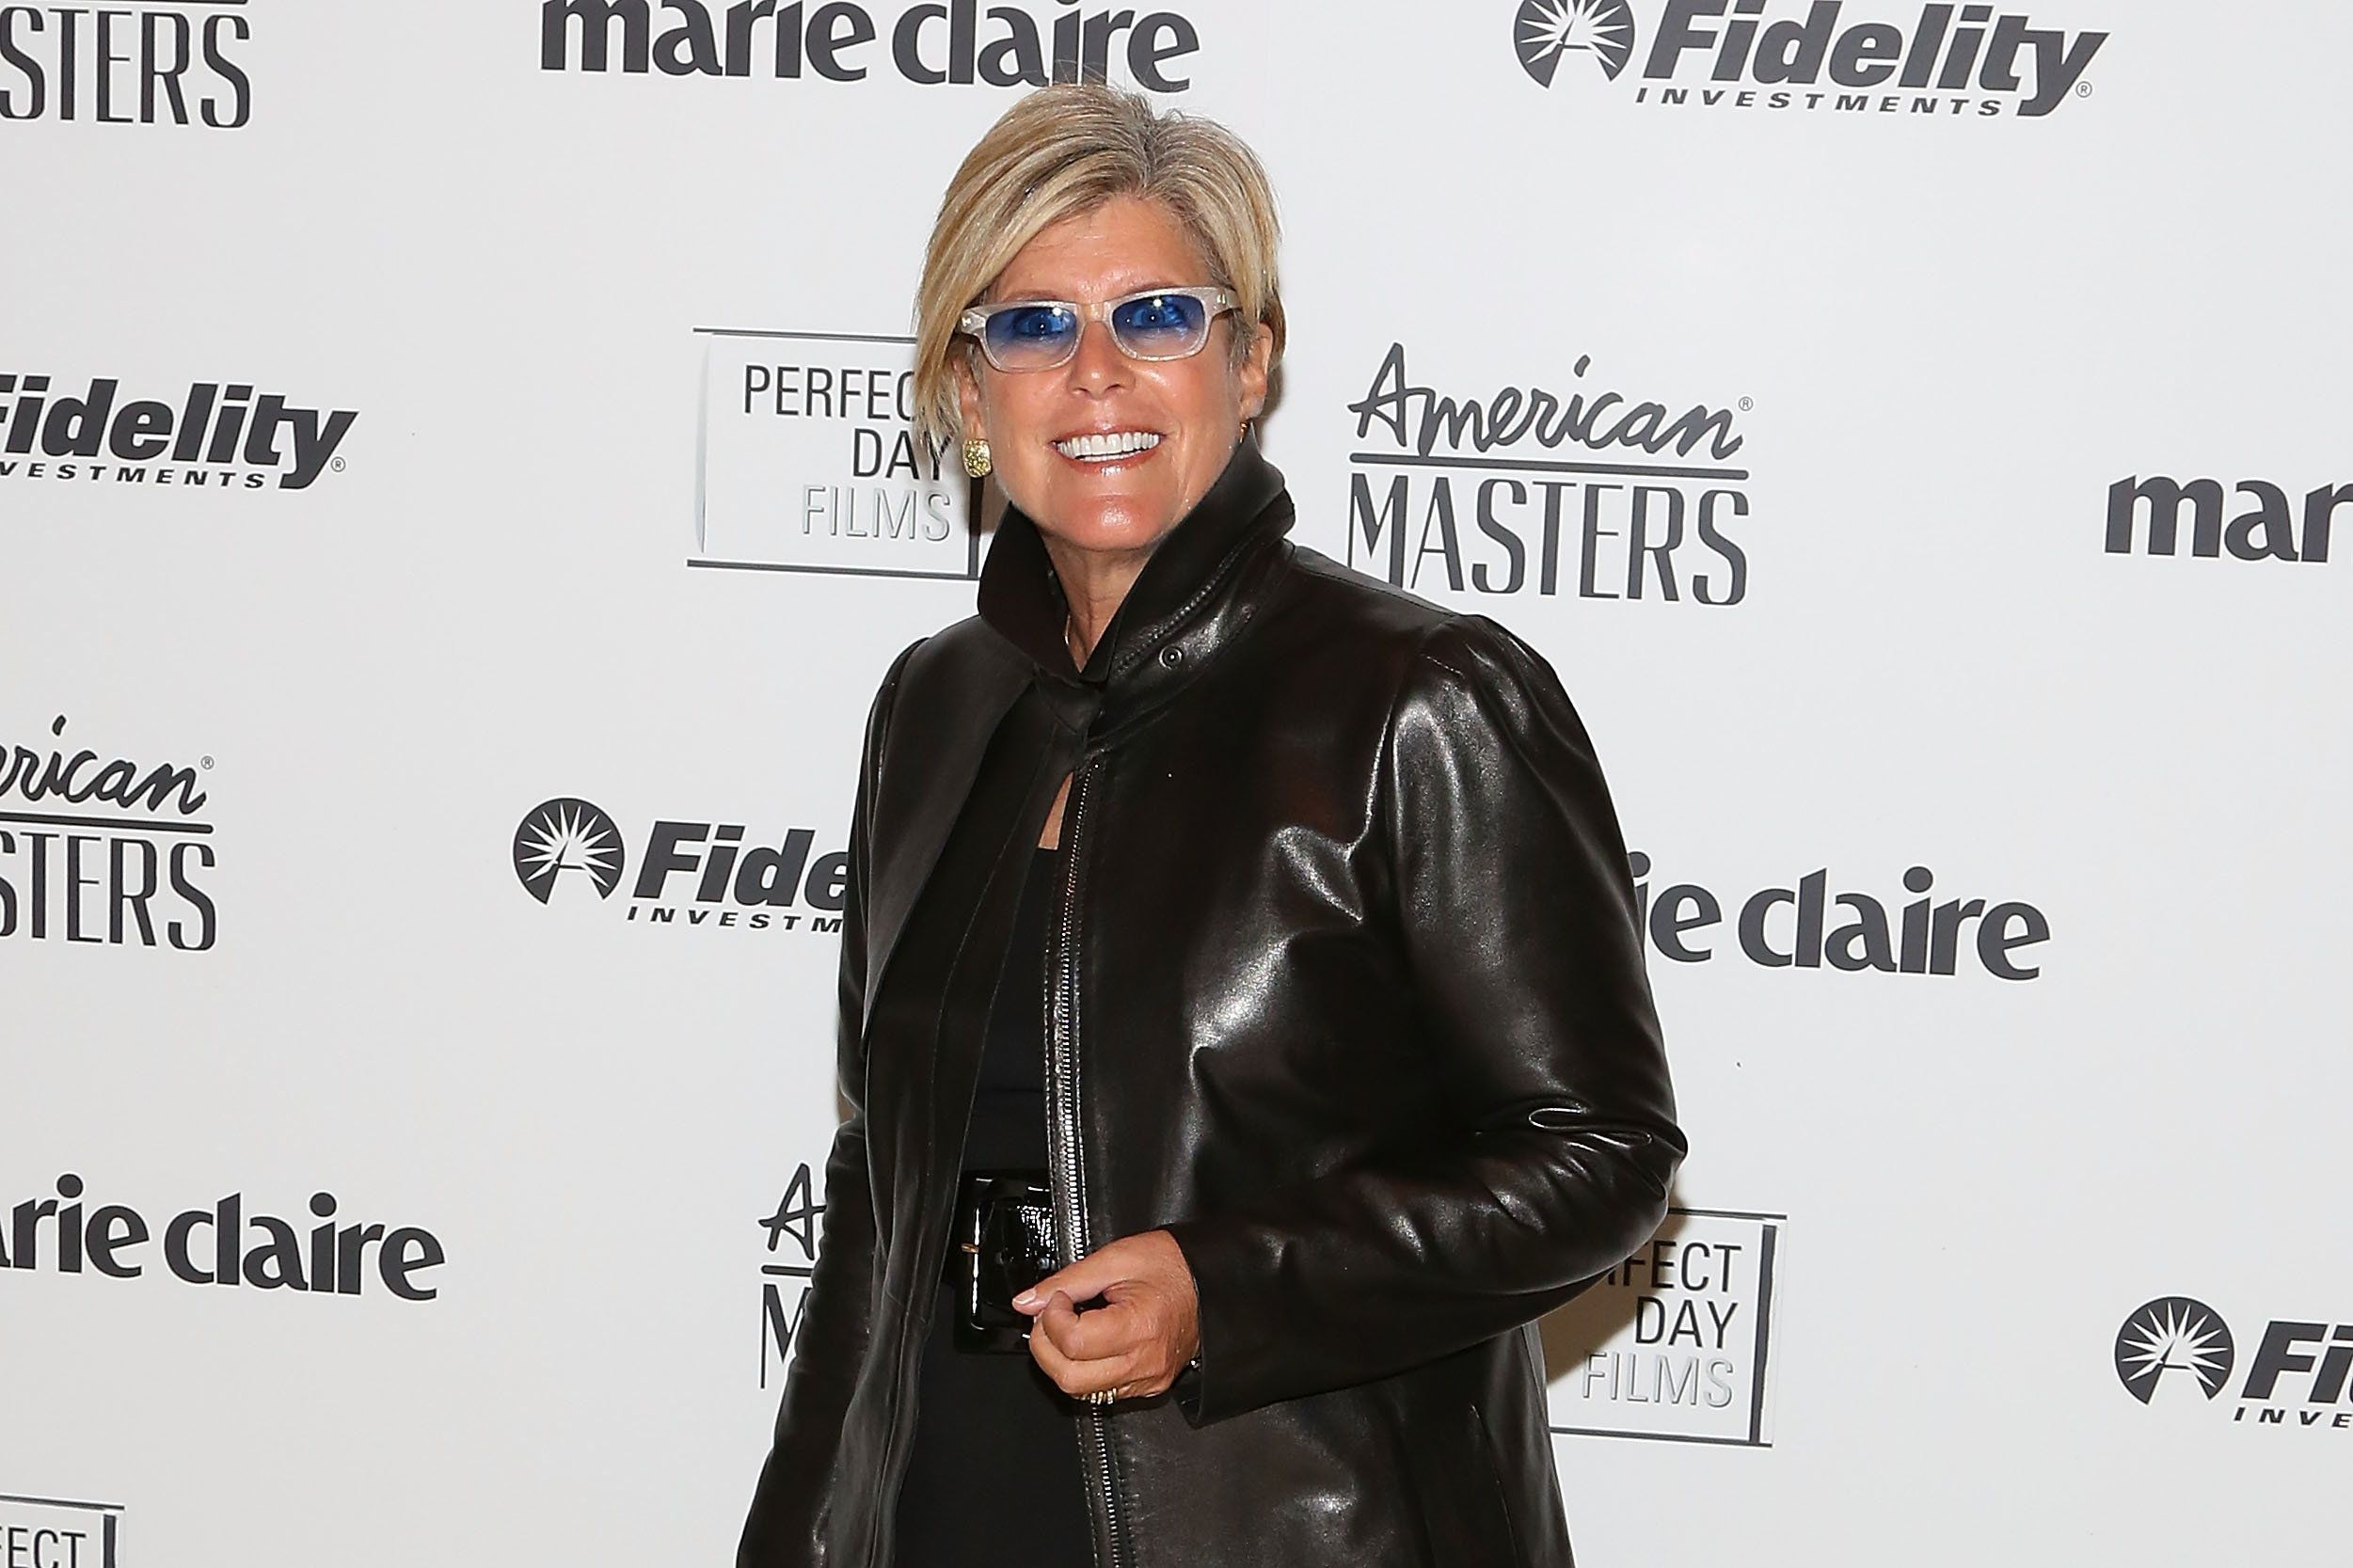 NEW YORK, NY - SEPTEMBER 21:  Suze Orman attends the premiere of 'American Masters: The Women's List' at Hearst Tower on September 21, 2015 in New York City.  (Photo by Taylor Hill/FilmMagic)